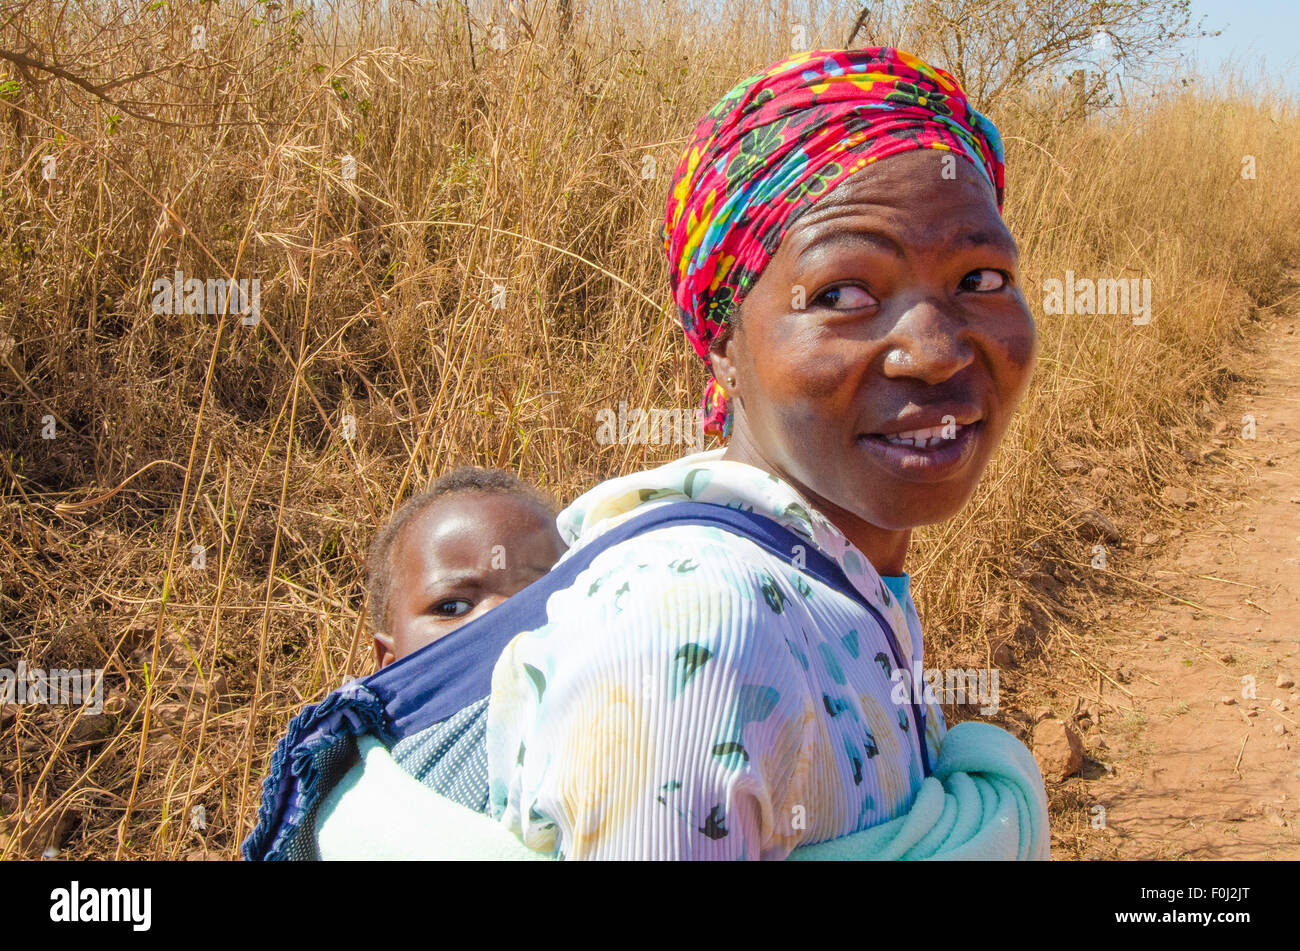 A mother carries her young son on her back as she hikes through the dirt roads of rural Swaziland. Stock Photo